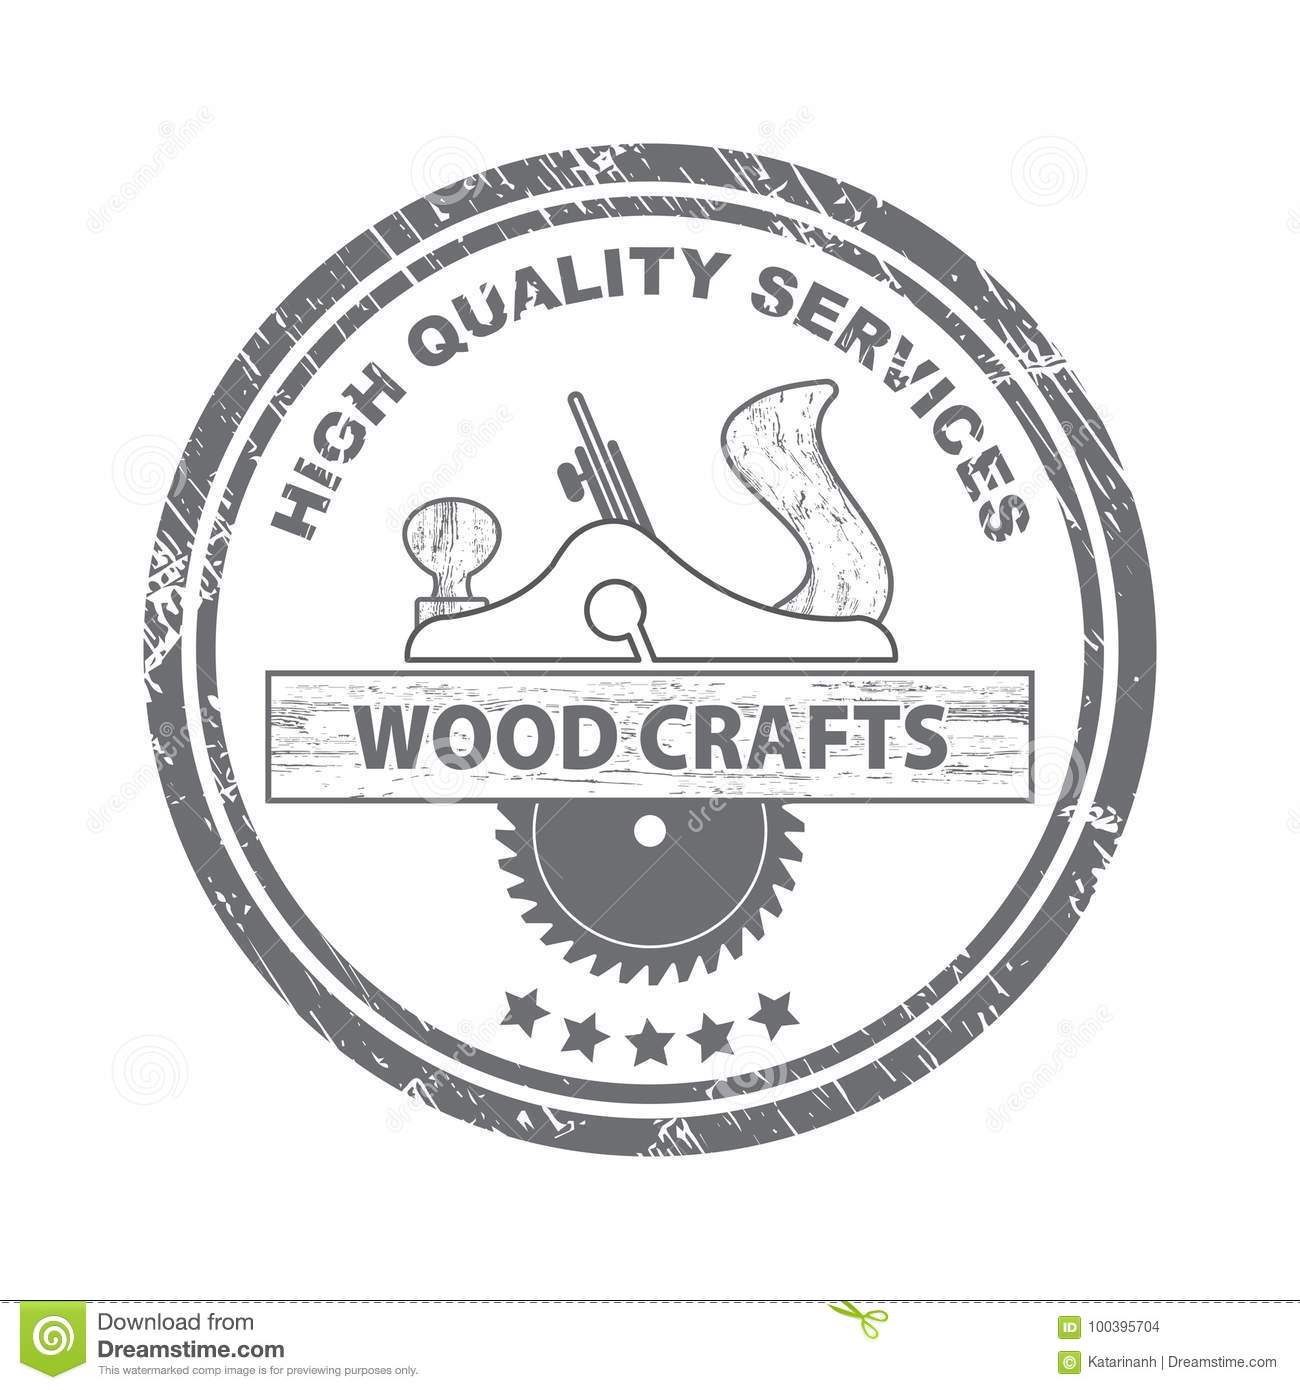 Professional Wood Craft Services Stamp Wood Craft Logo Wood Works